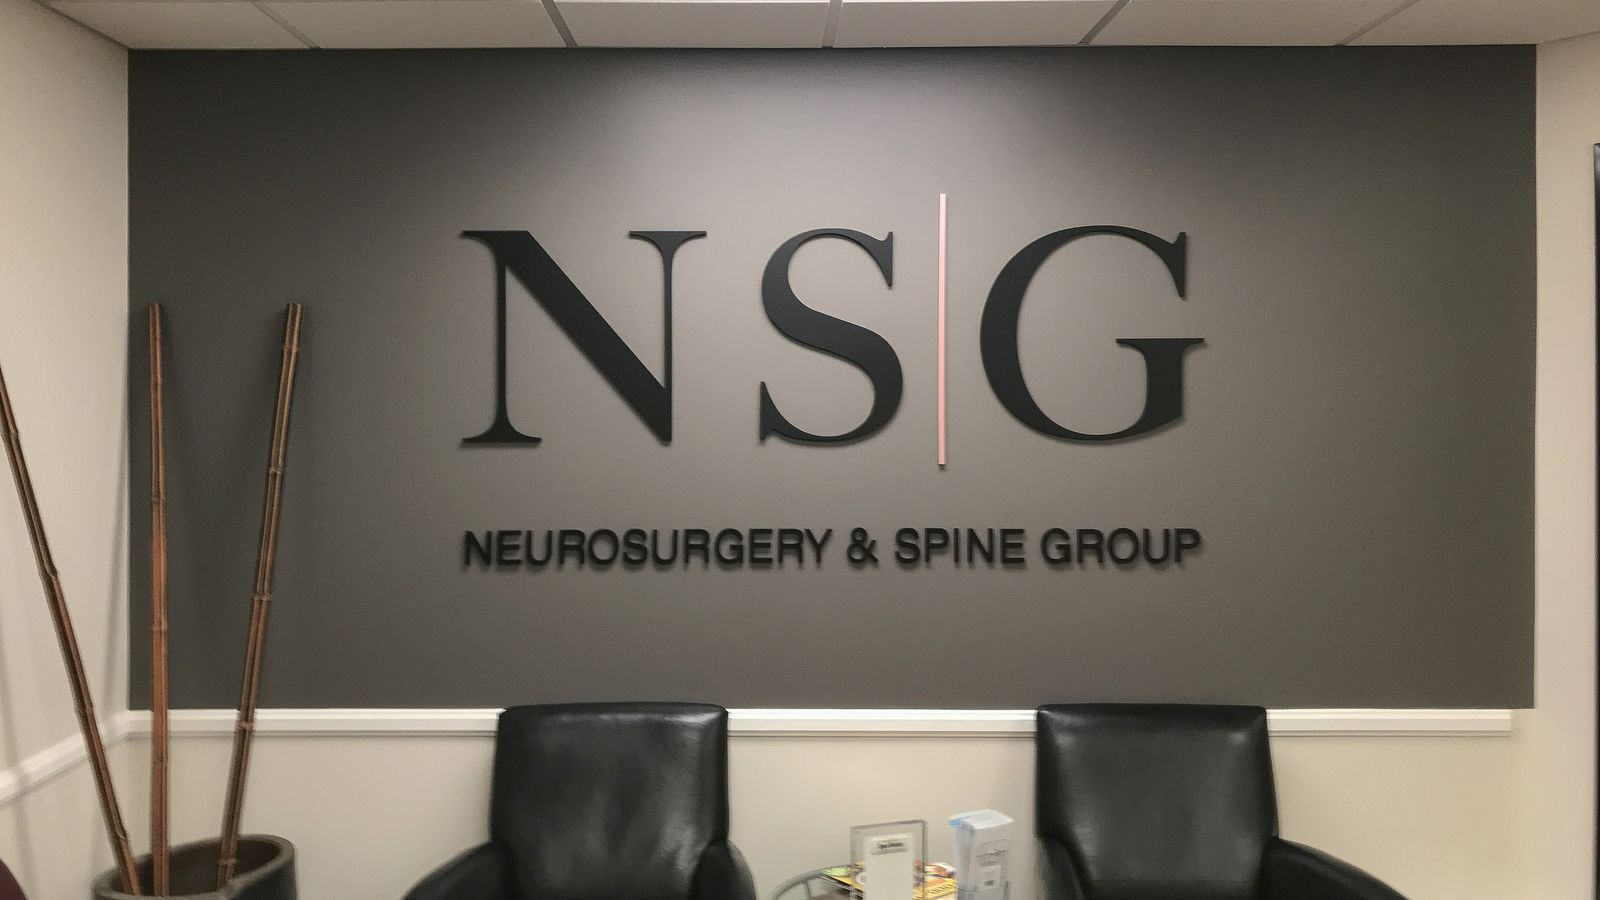 NSG Neurosurgery & Spine Group 3d acrylic letters in black displaying the brand name